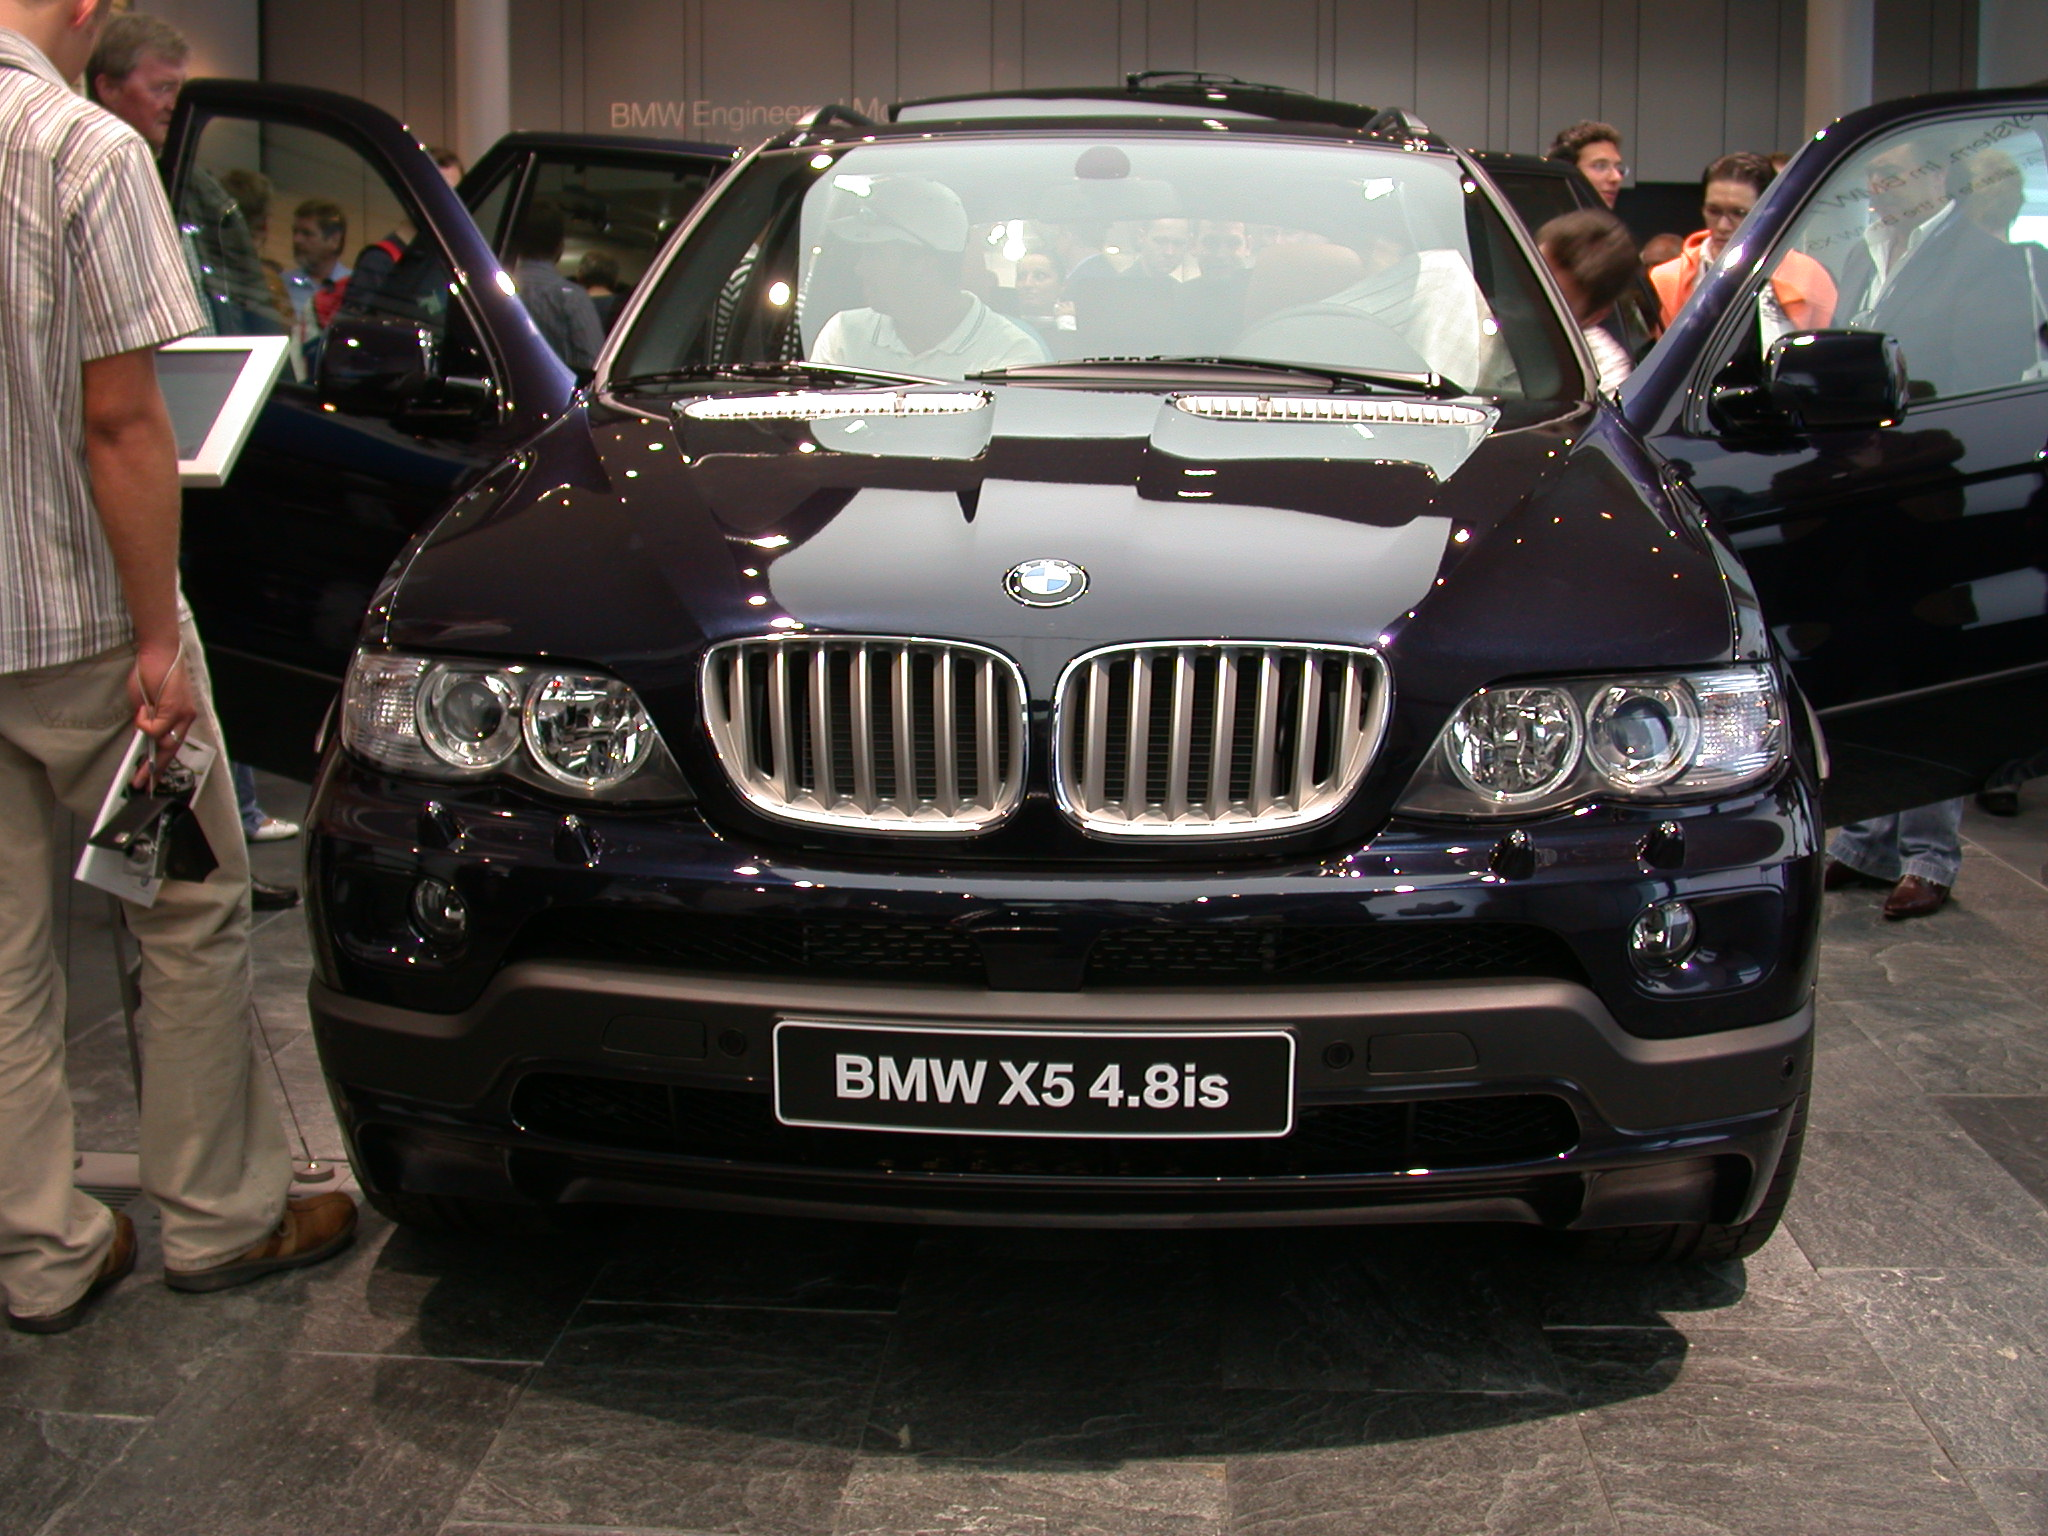 BMW X5 4.8is 2005 photo - 8